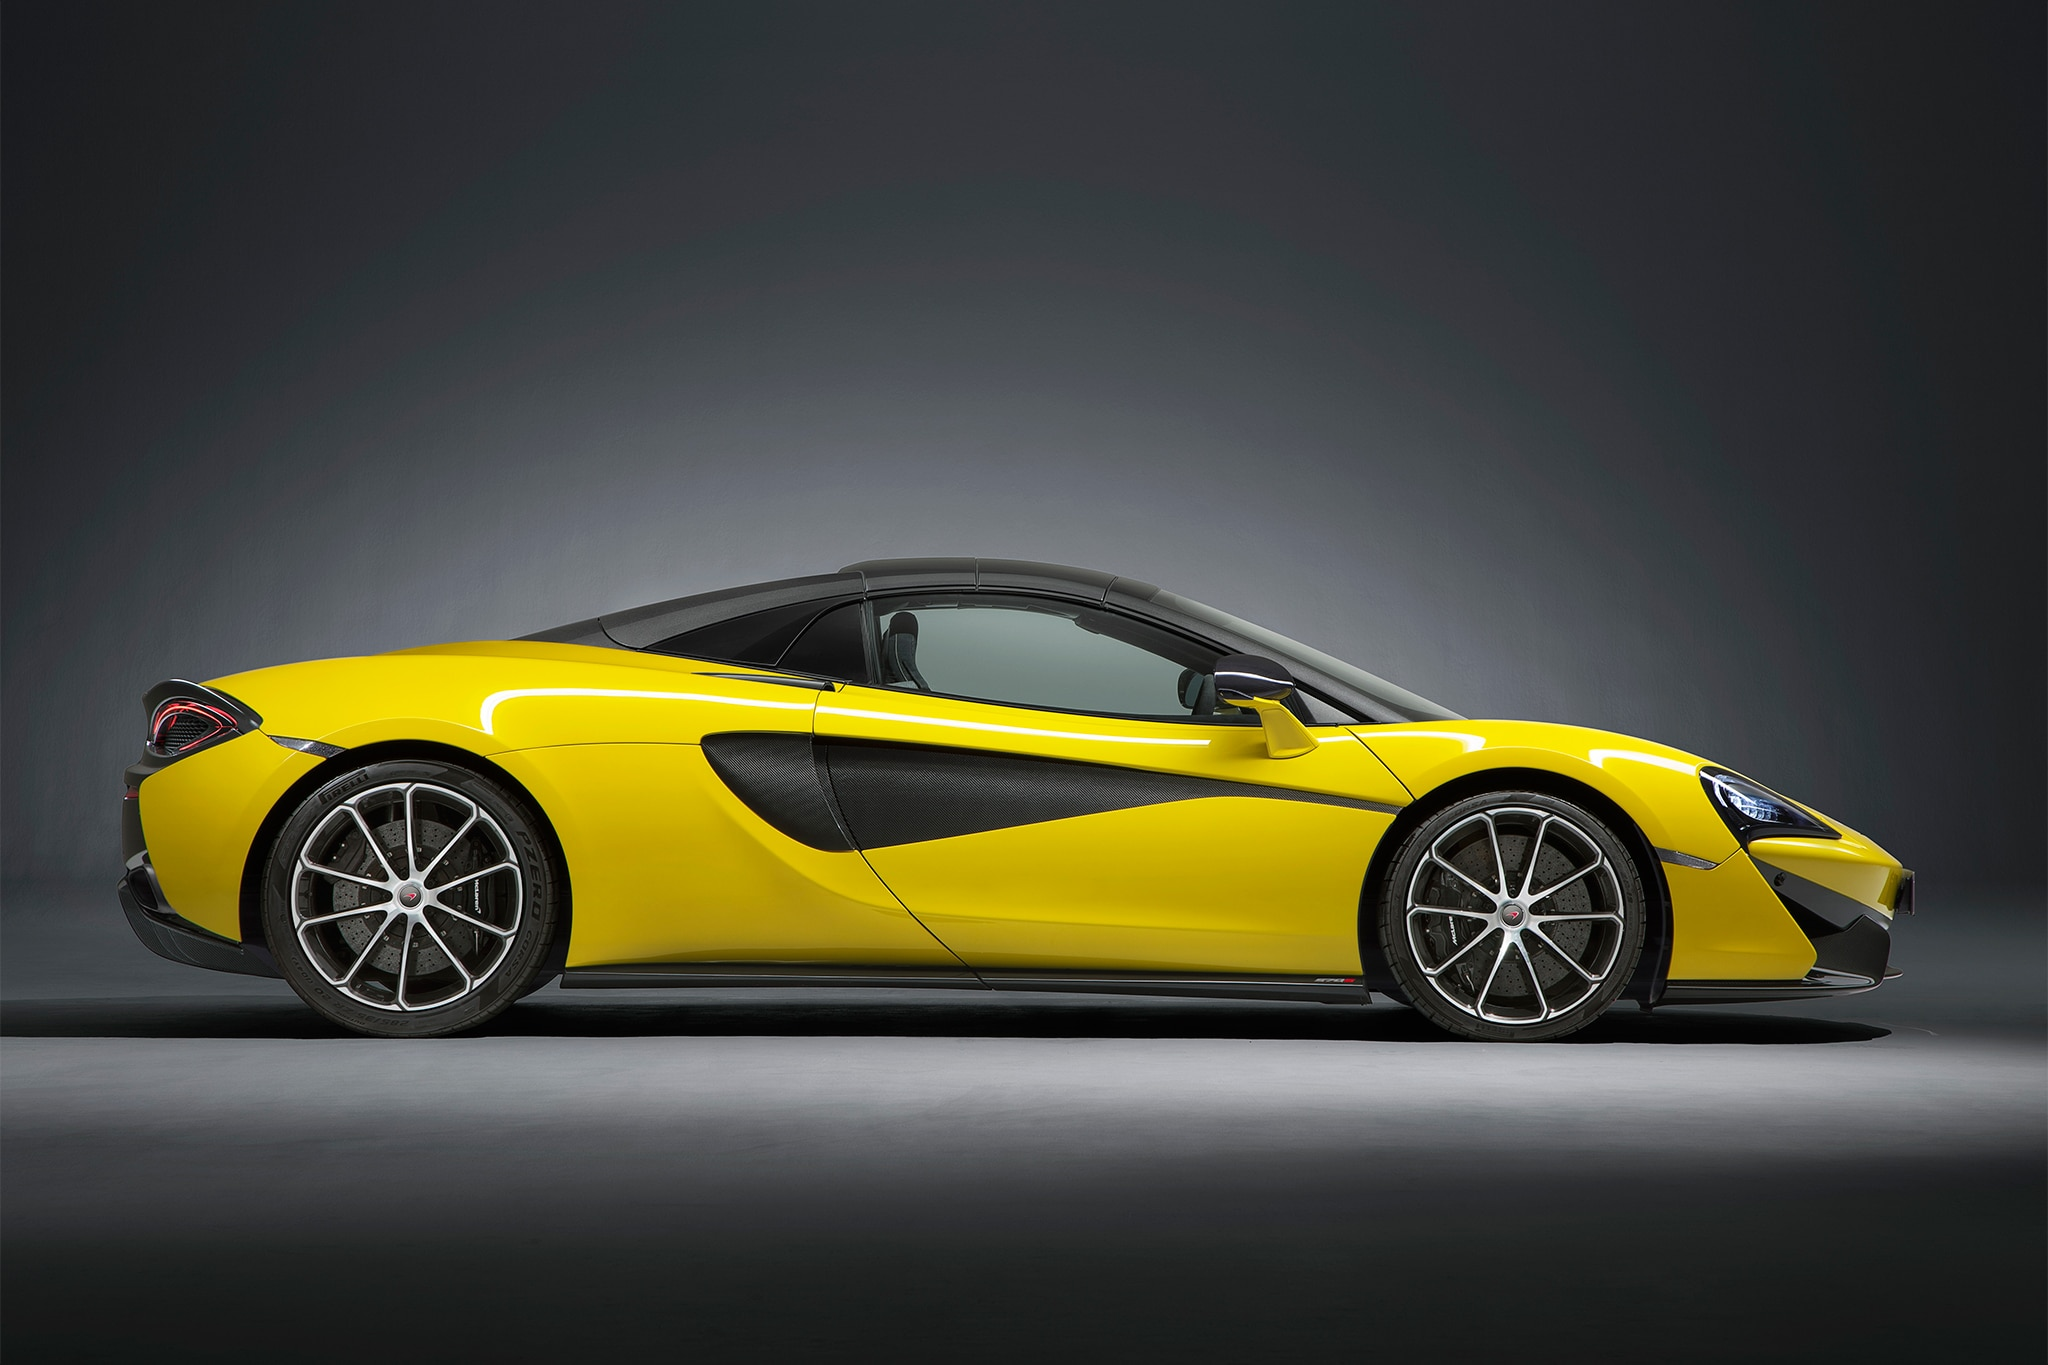 2018 Mclaren 570s Spider Coming To Goodwood Automobile